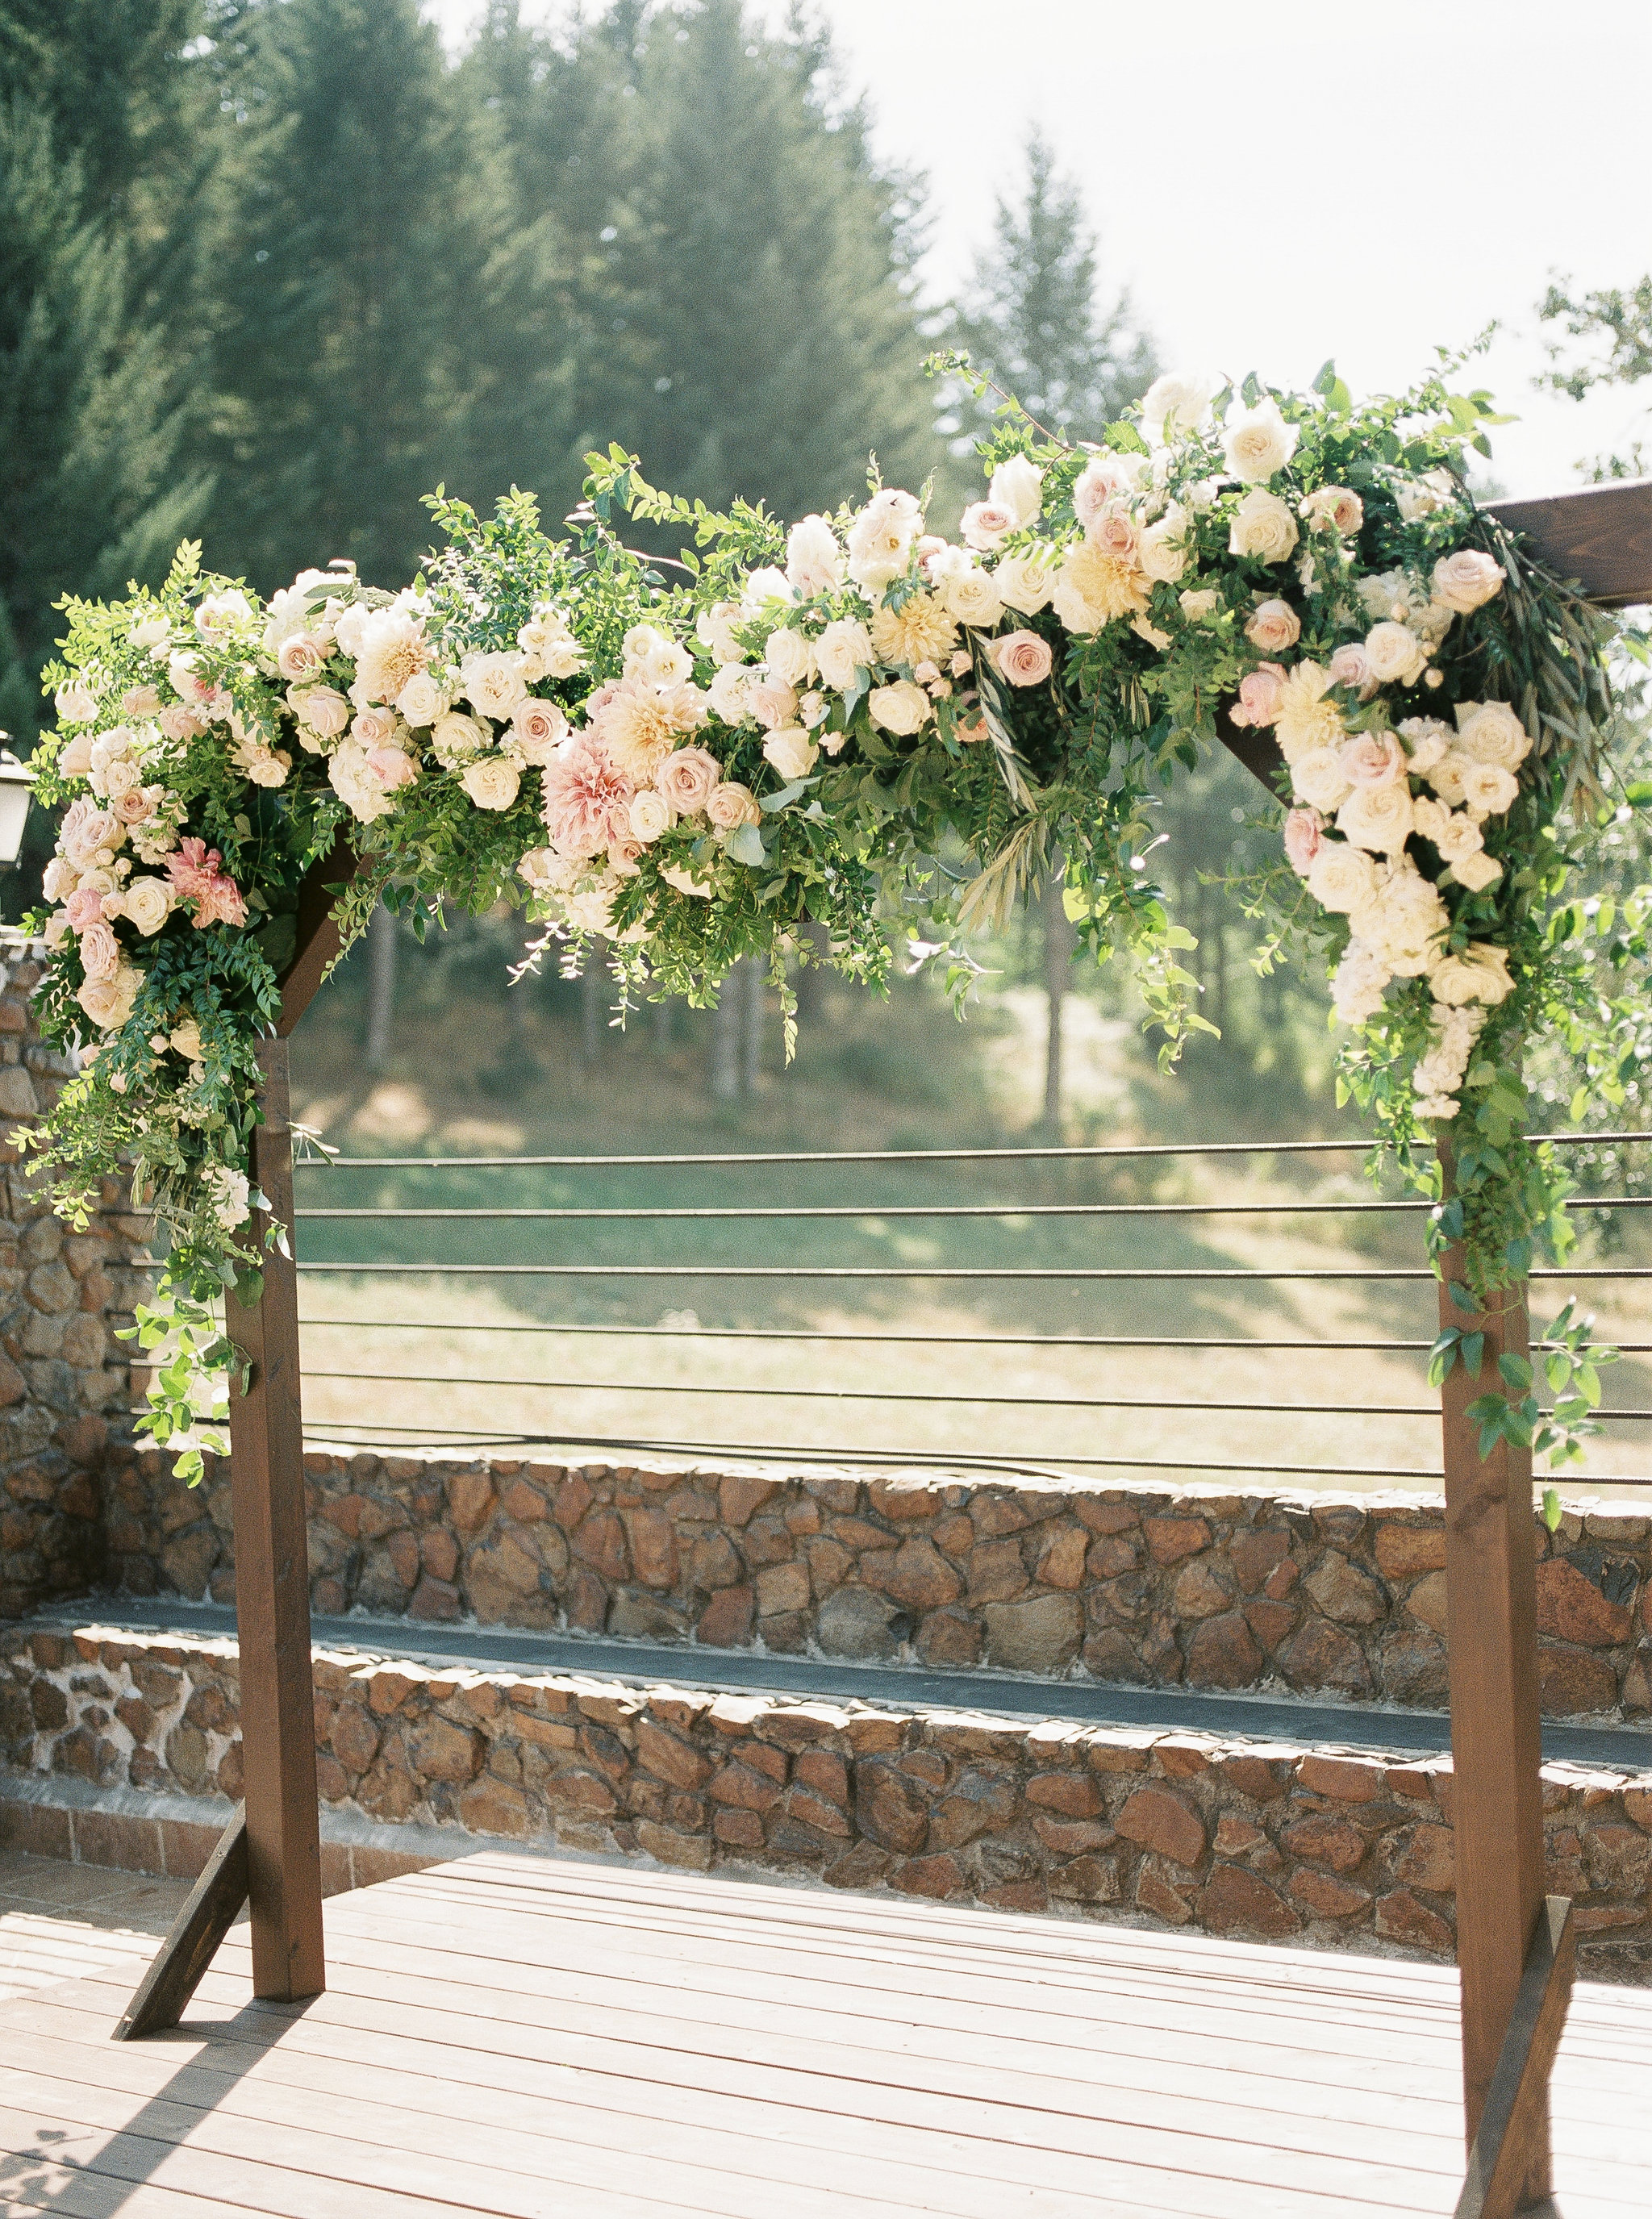 Bridalbliss.com | Portland Wedding | Oregon Event Planning and Design |  Alexandra Grace Photography